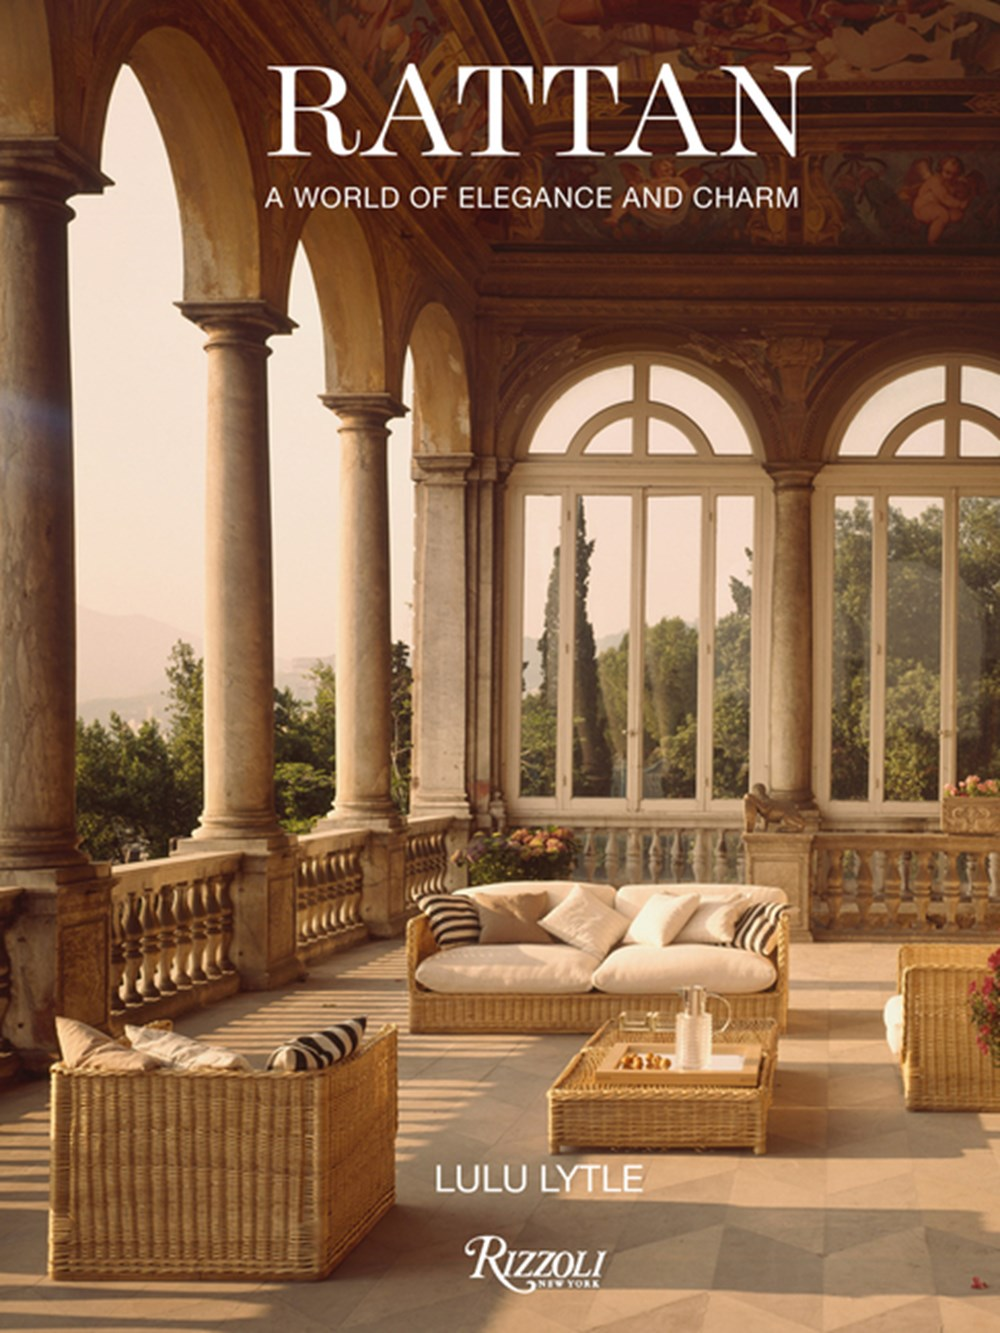 Rattan A World of Elegance and Charm